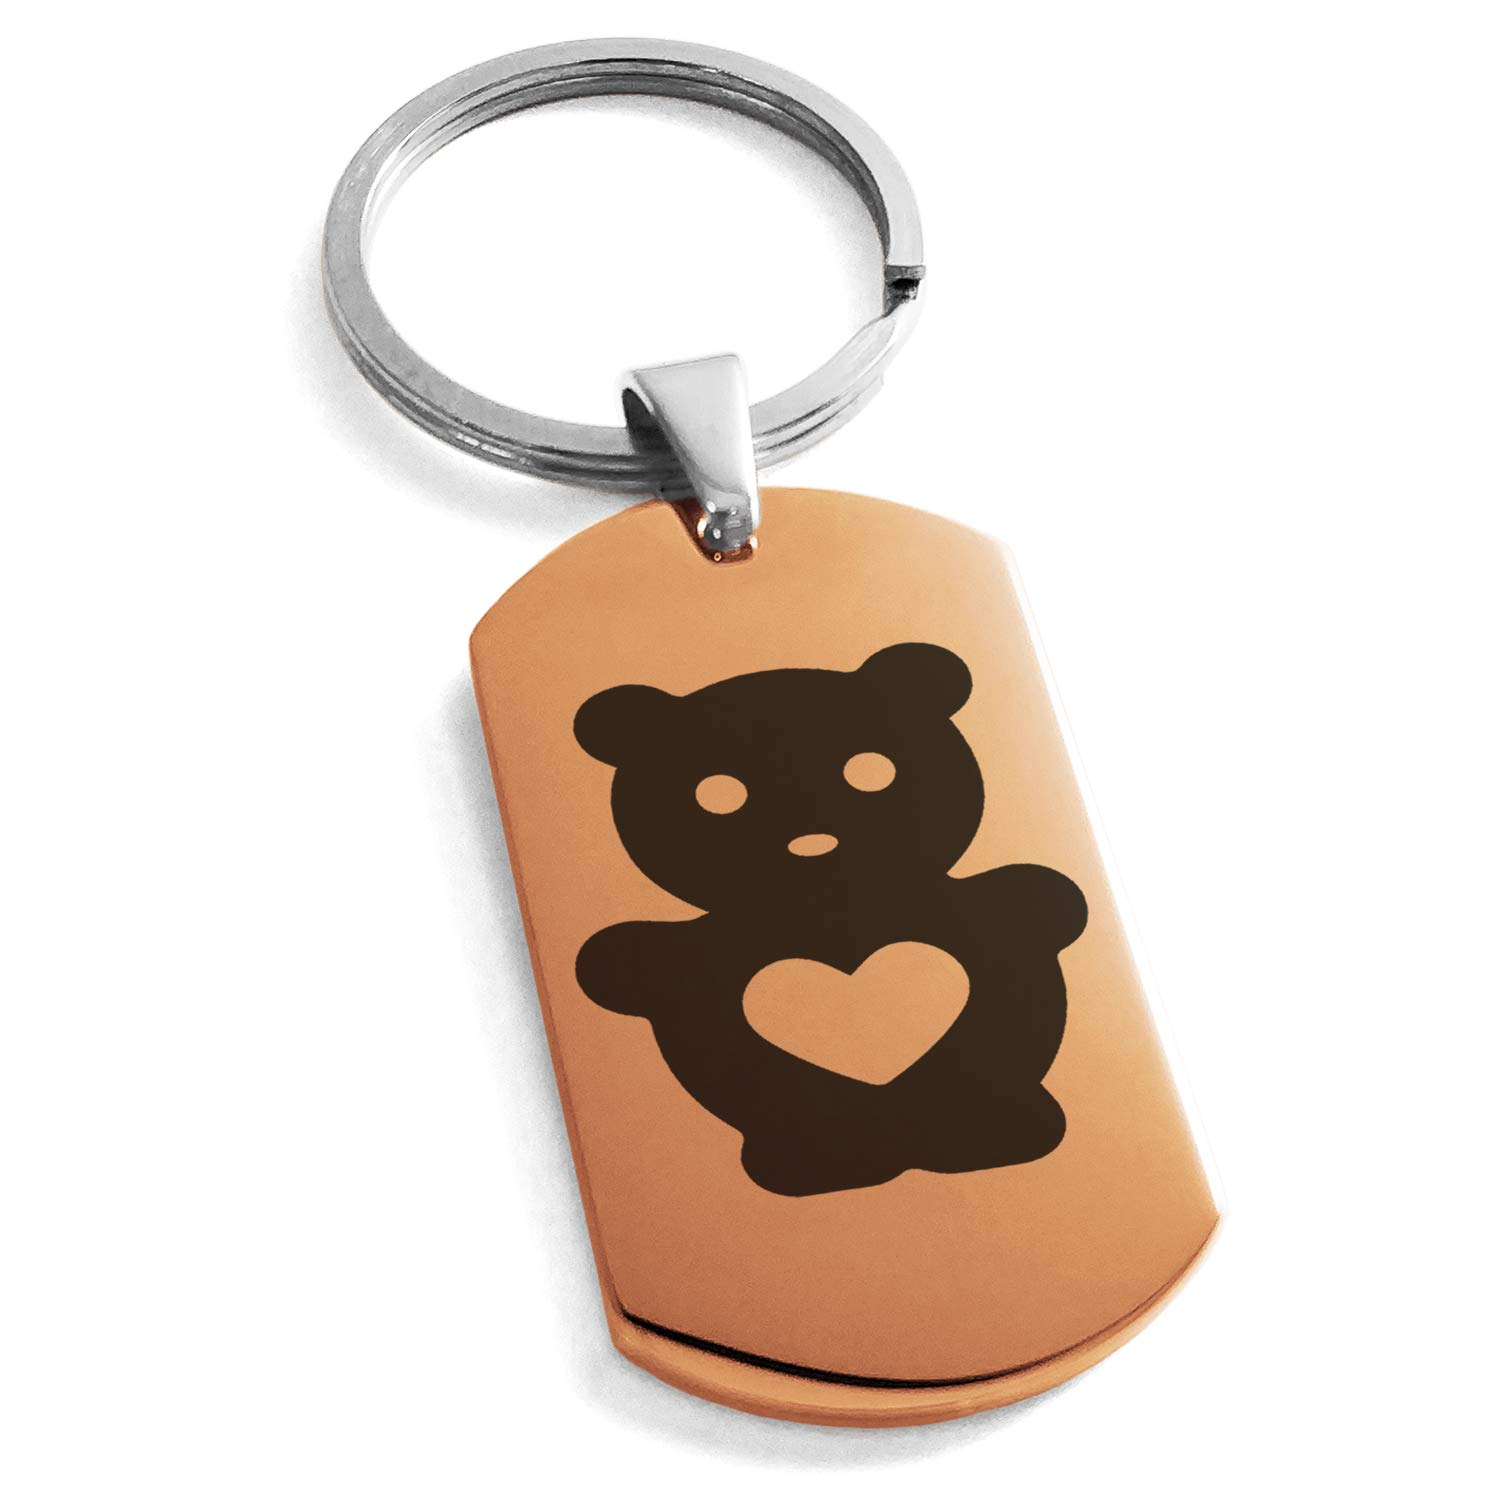 Rose Gold Stainless Steel Teddy Bear Love Engraved Dog Tag Keychain Keyring